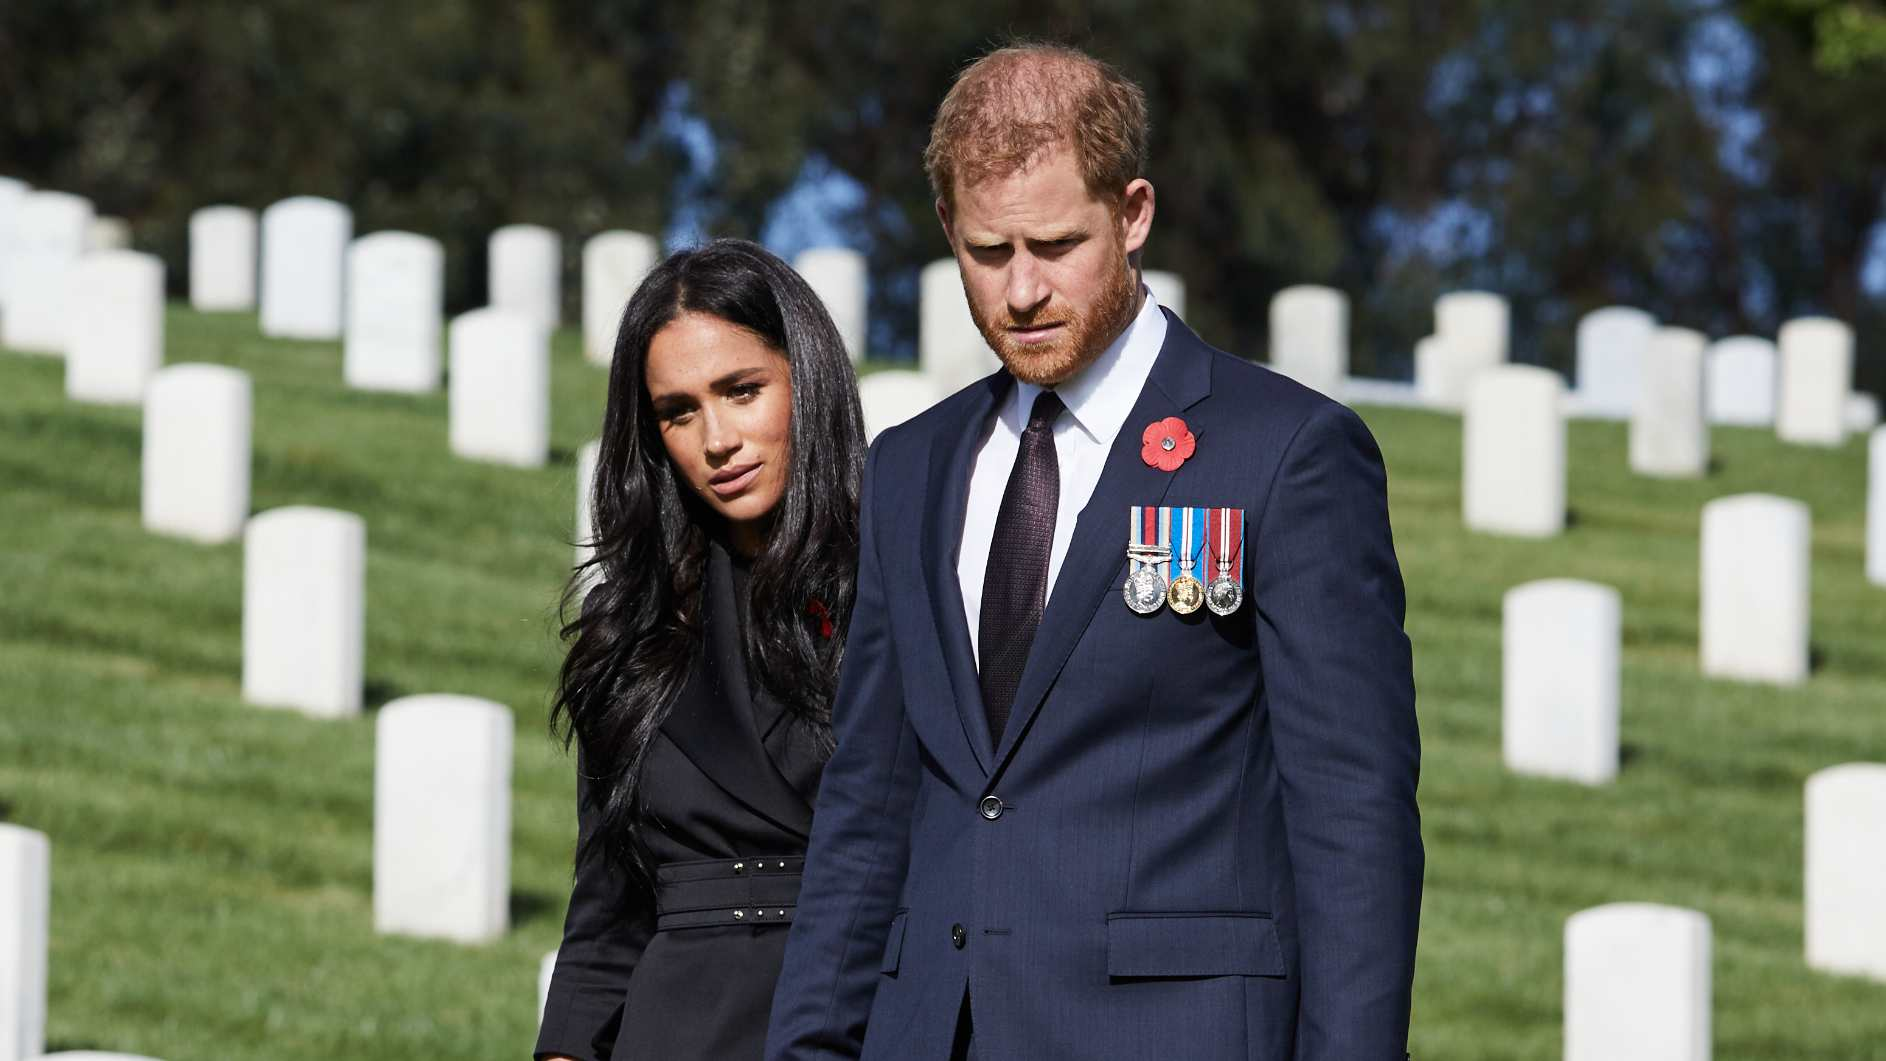 prince harry meghan markle celebrate remembrance day in the us entertainment tonight prince harry meghan markle celebrate